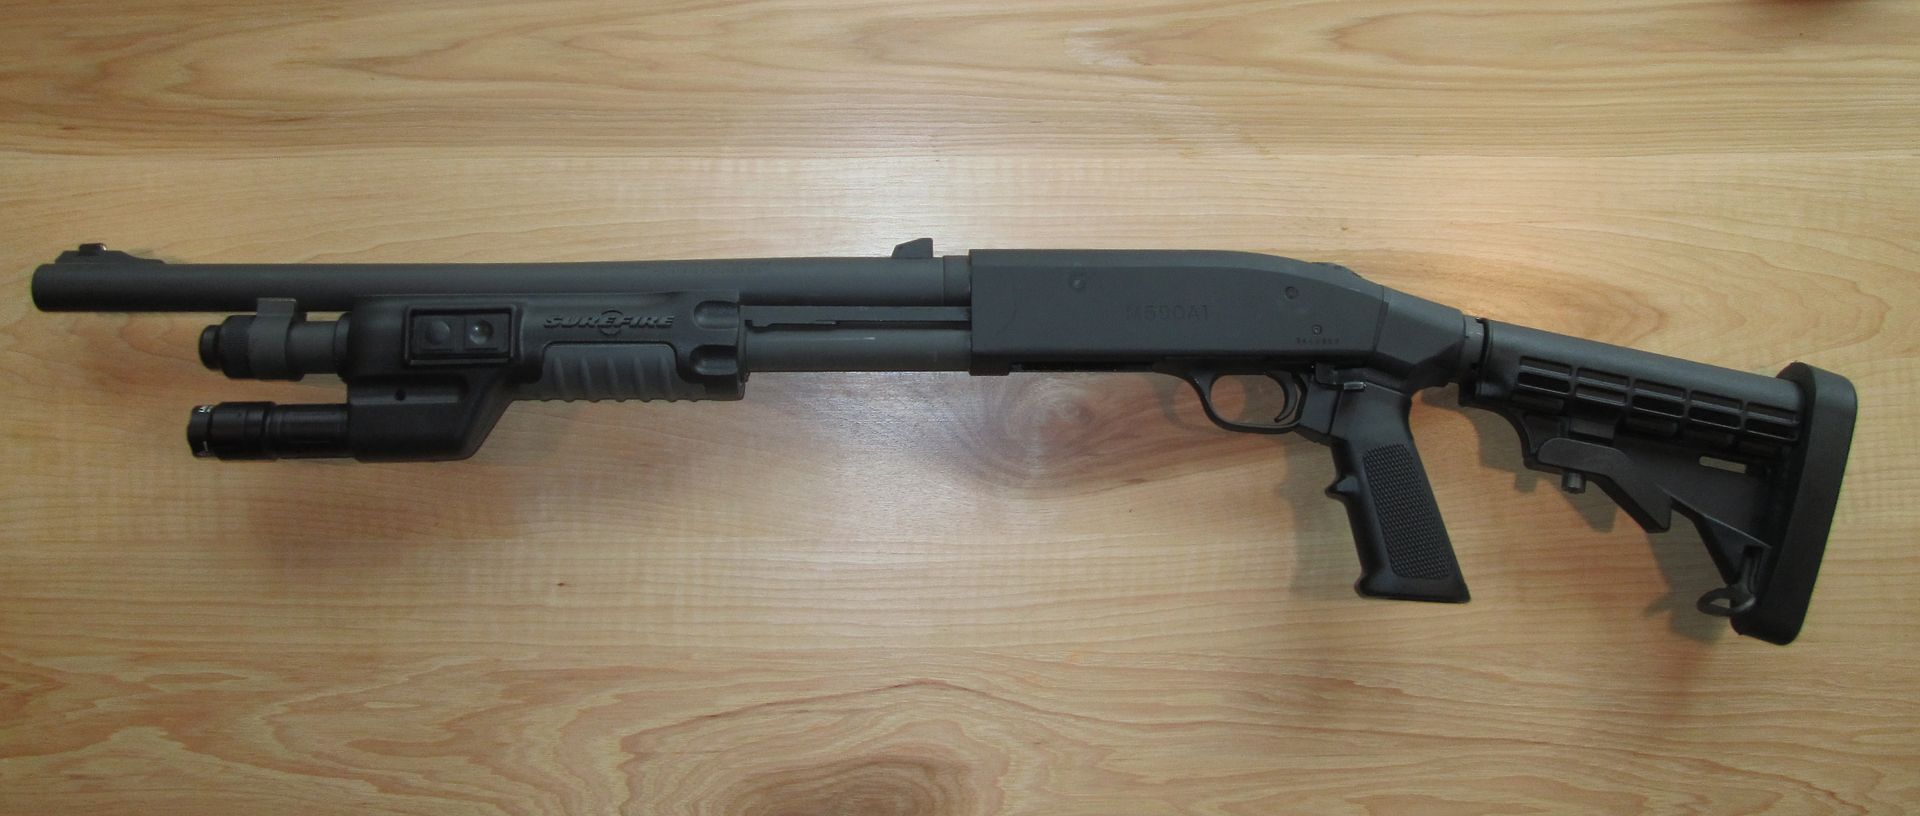 Remington 887 O Mossberg 590 Forocoches